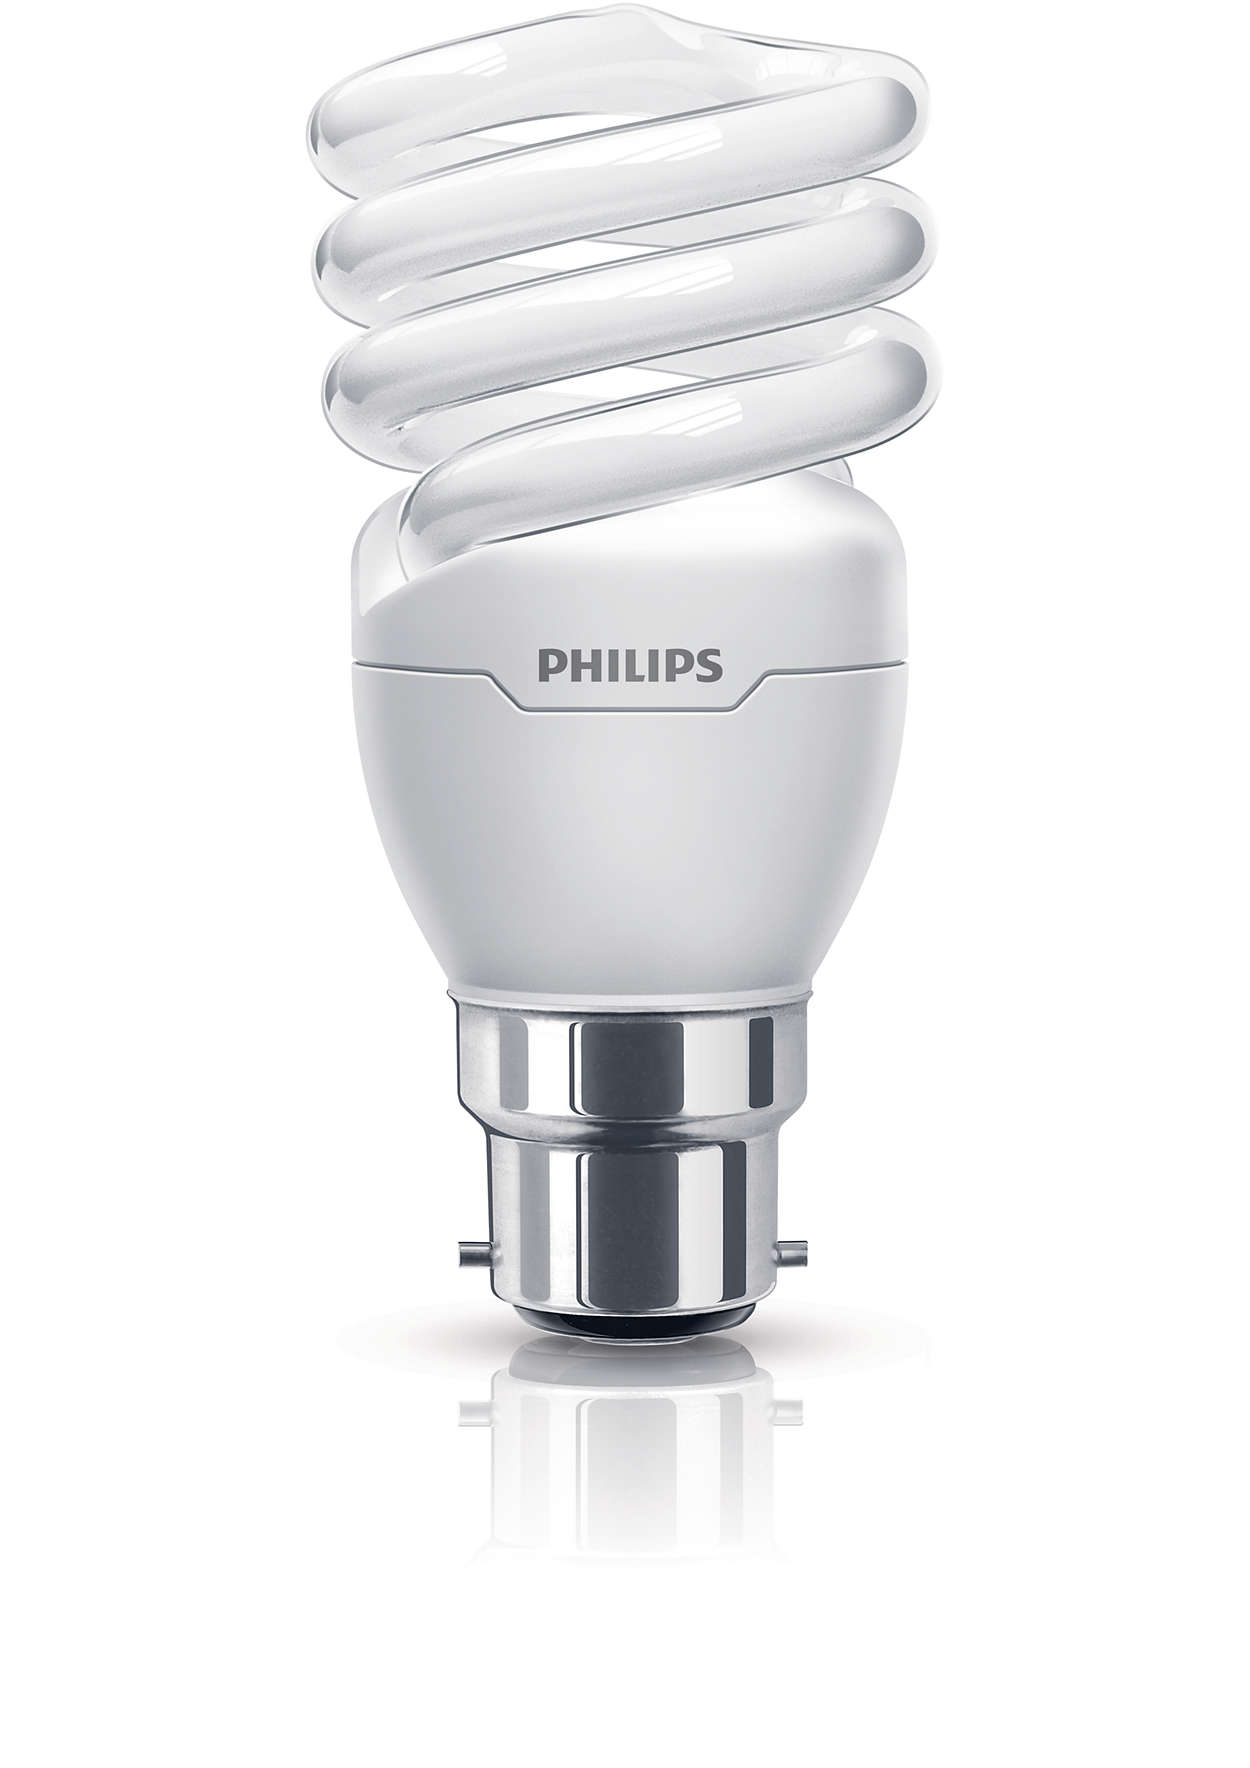 Tornado Spiral Energy Saving Bulb 8727900925807 Philips